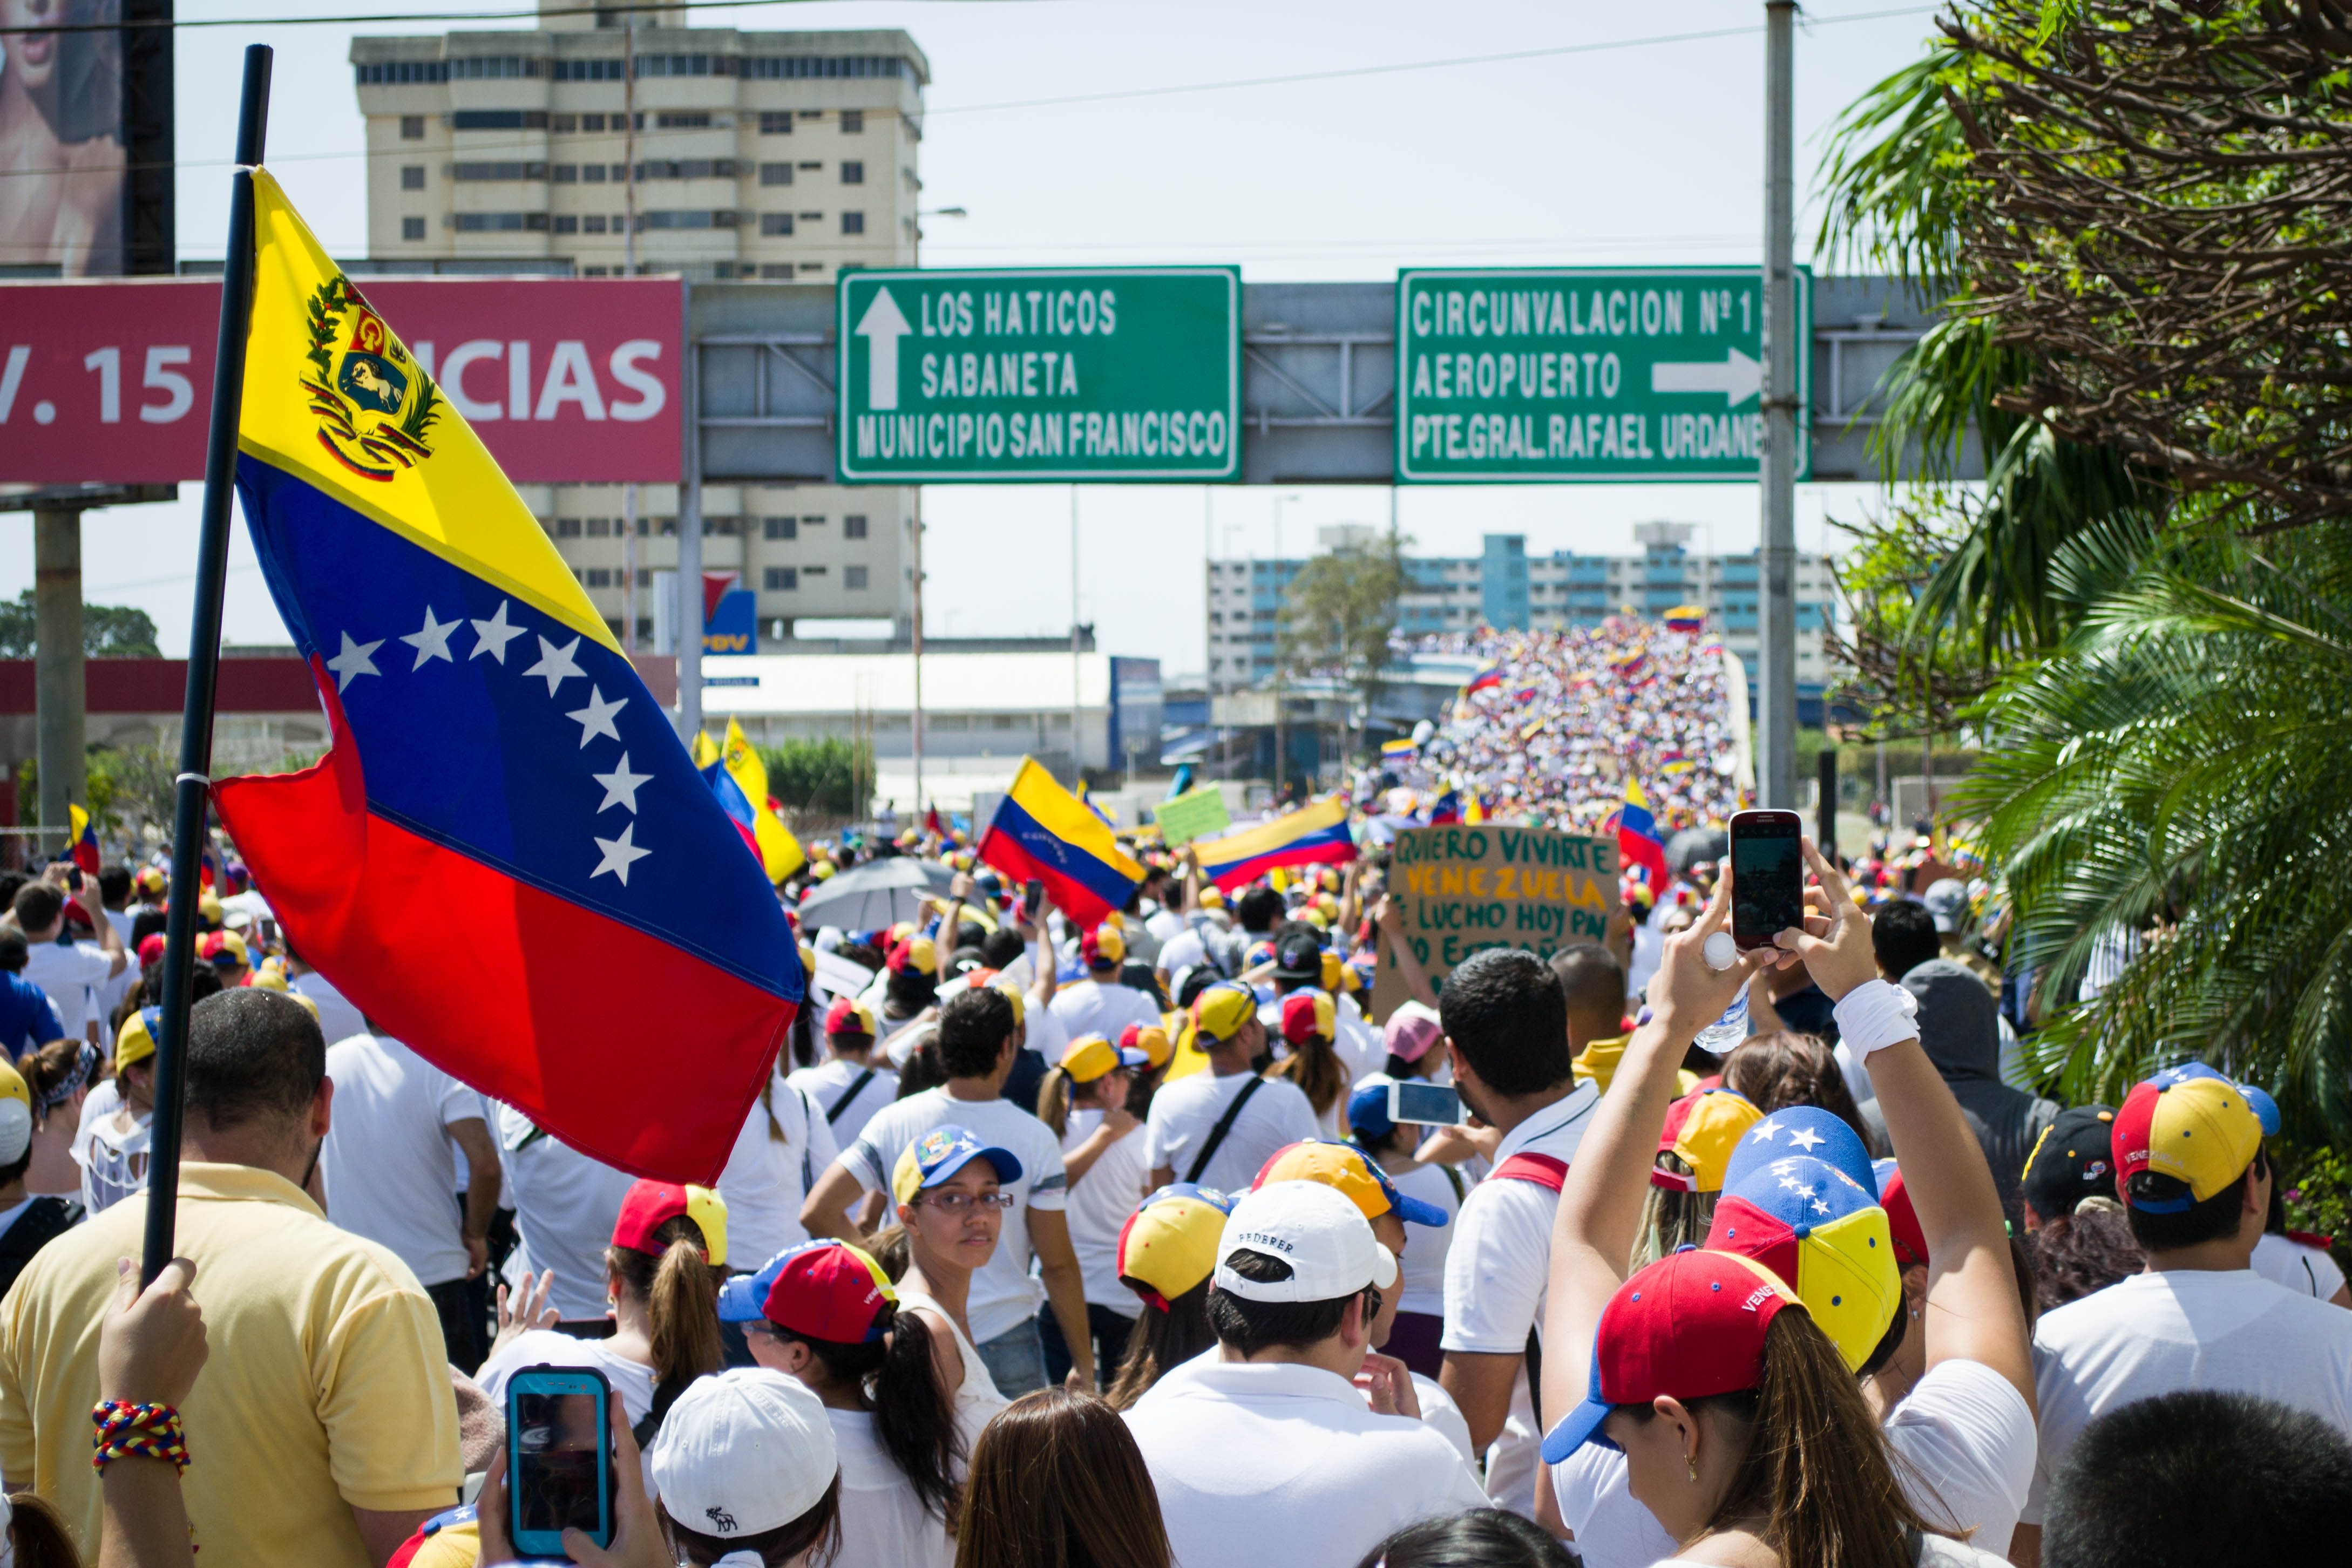 Tensions between pro-government and opposition groups in Venezuela escalate